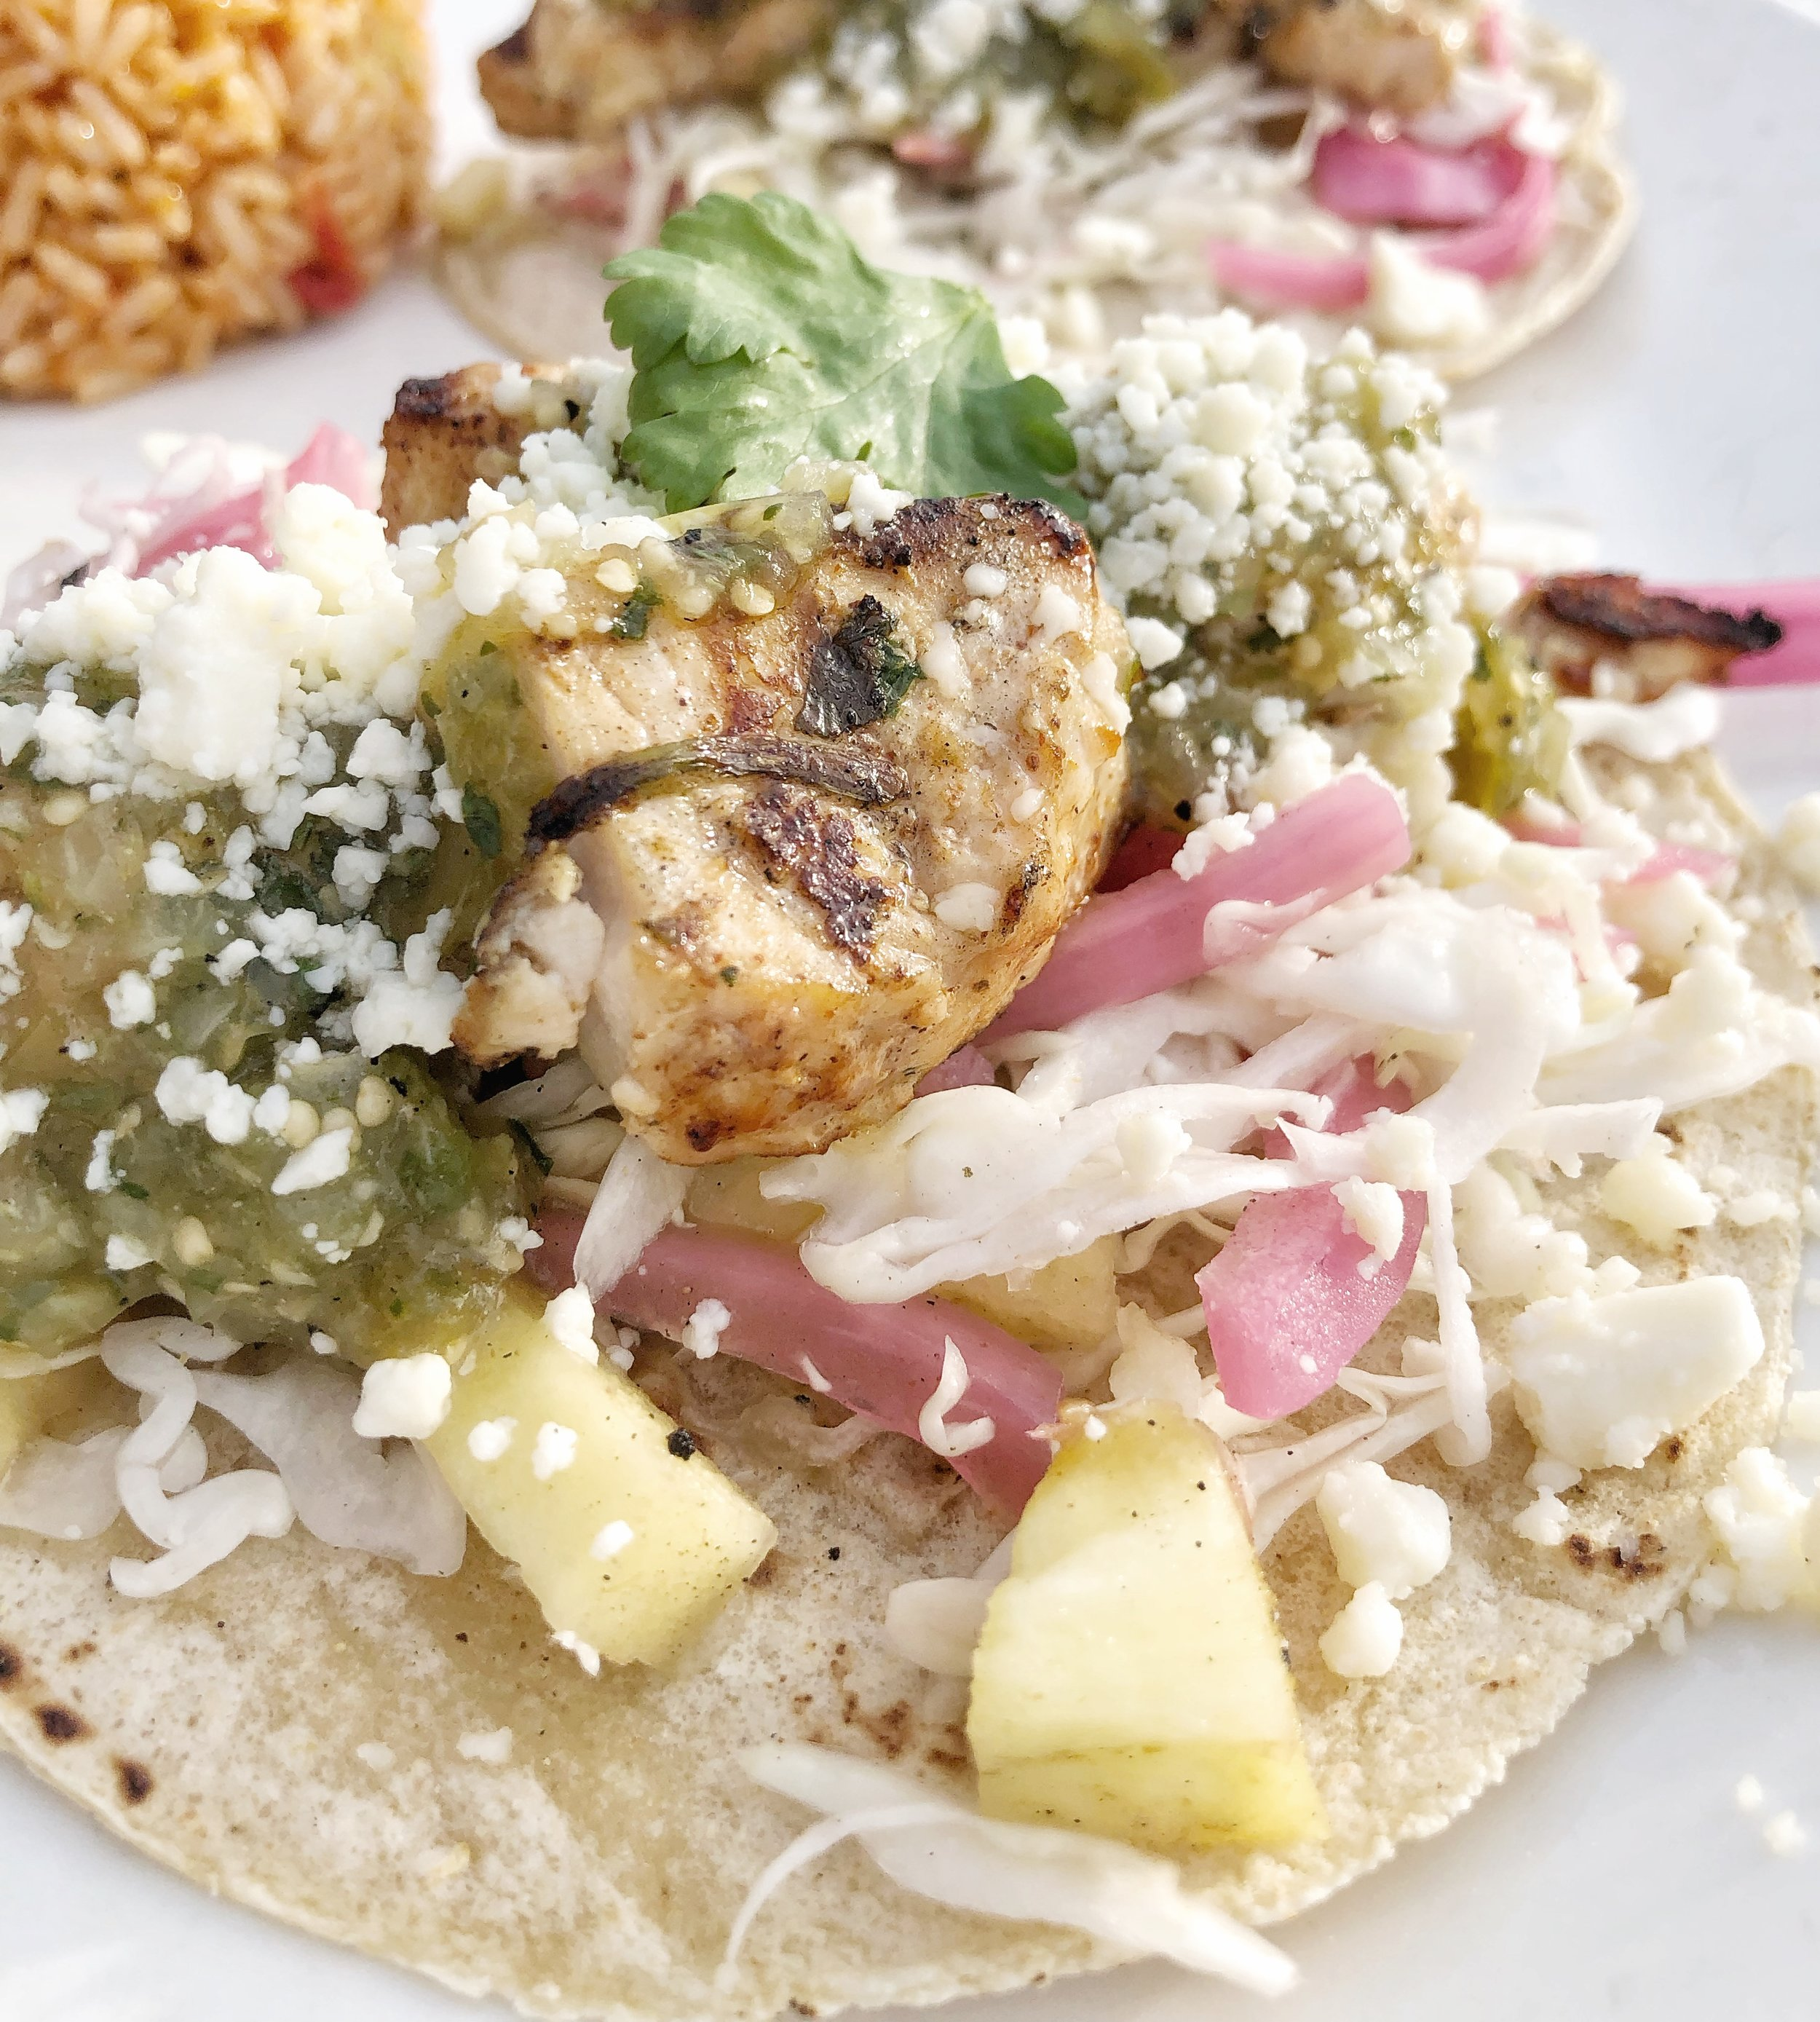 StreetSide Grilled Fish Tacos - Grilled white fish, fresh corn tortillas, grilled pineapple pickled onion, salsa verde served with Spanish rice & black beansDid someone say Taco Tuesday? Who wants to crowd into the same old tired taco joint as the rest of Charlotte when you can get these beauties? That's what I thought.